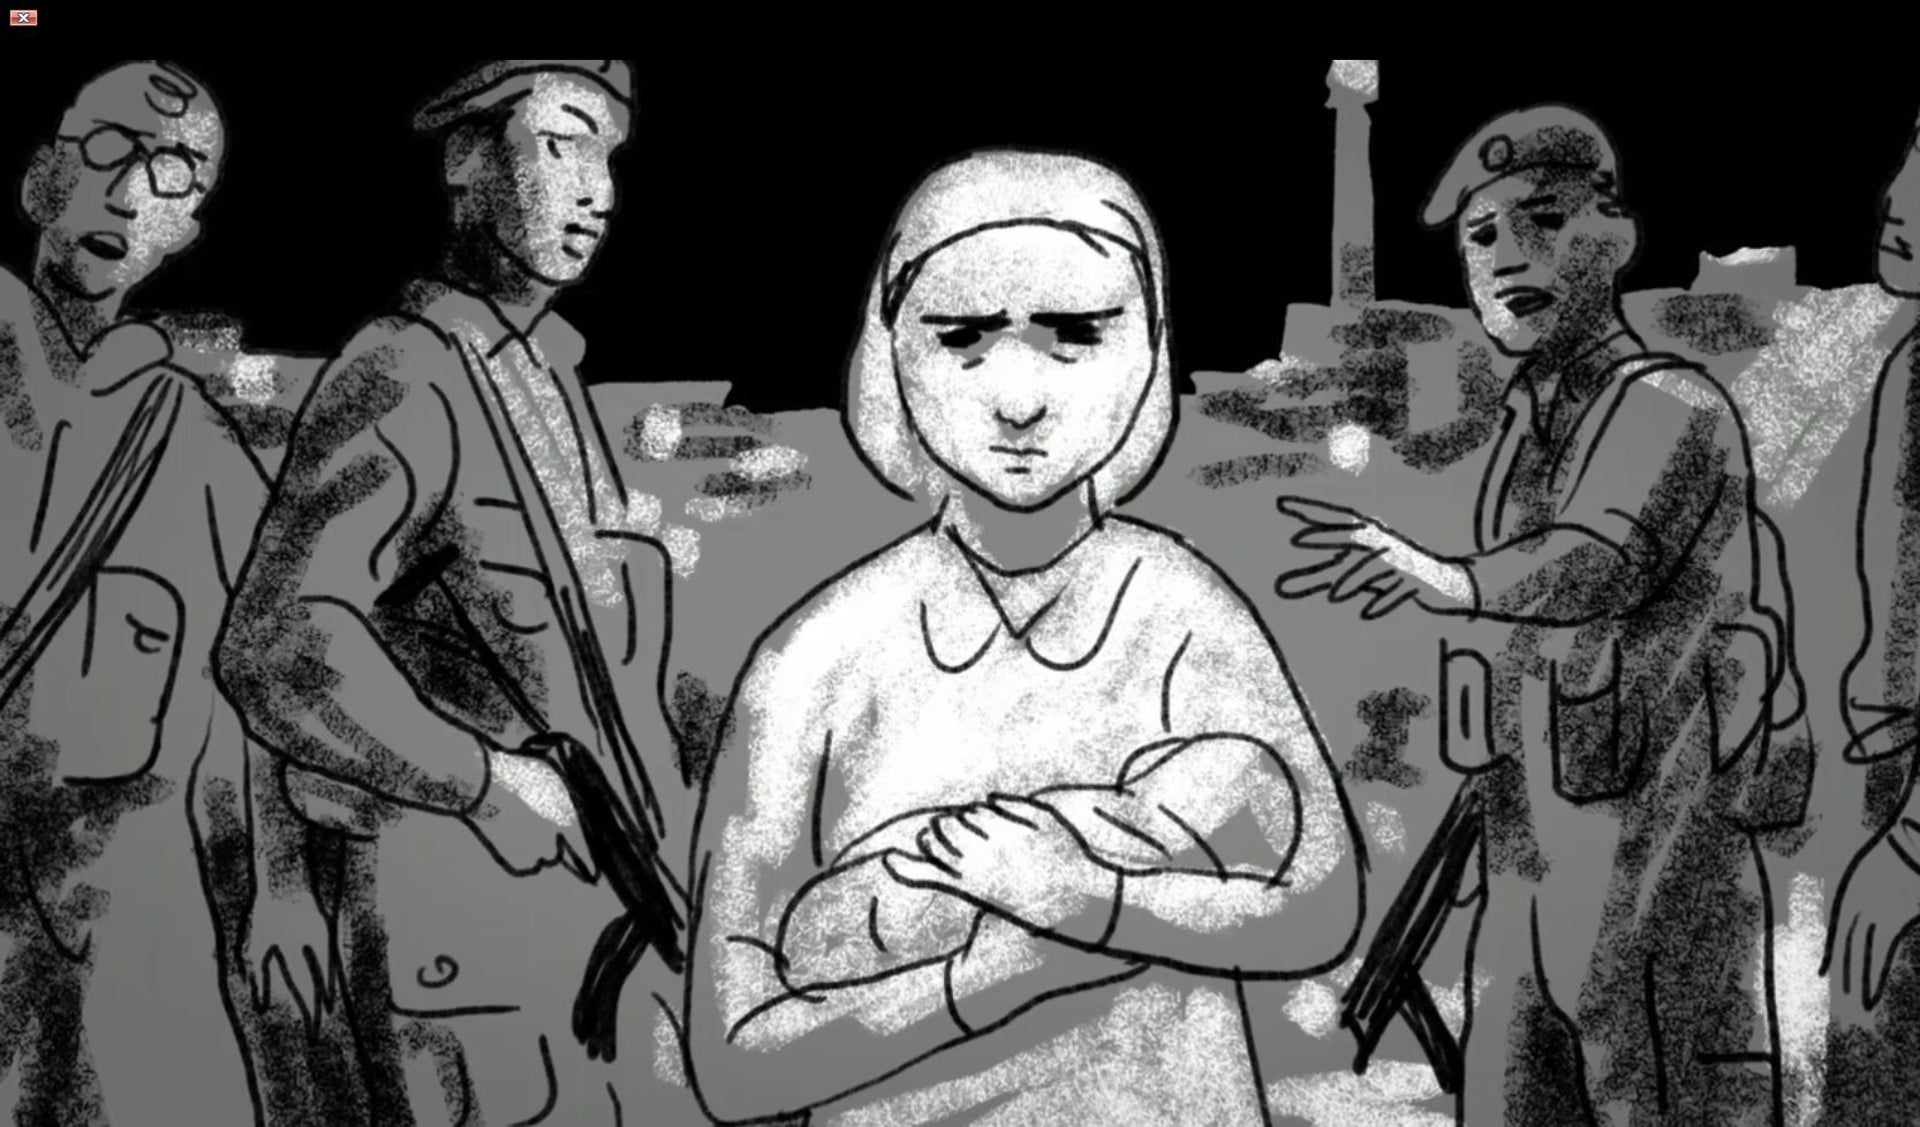 An illustration by David Polonski from the movie (Sarah Nachshon with the dead child in her arms).